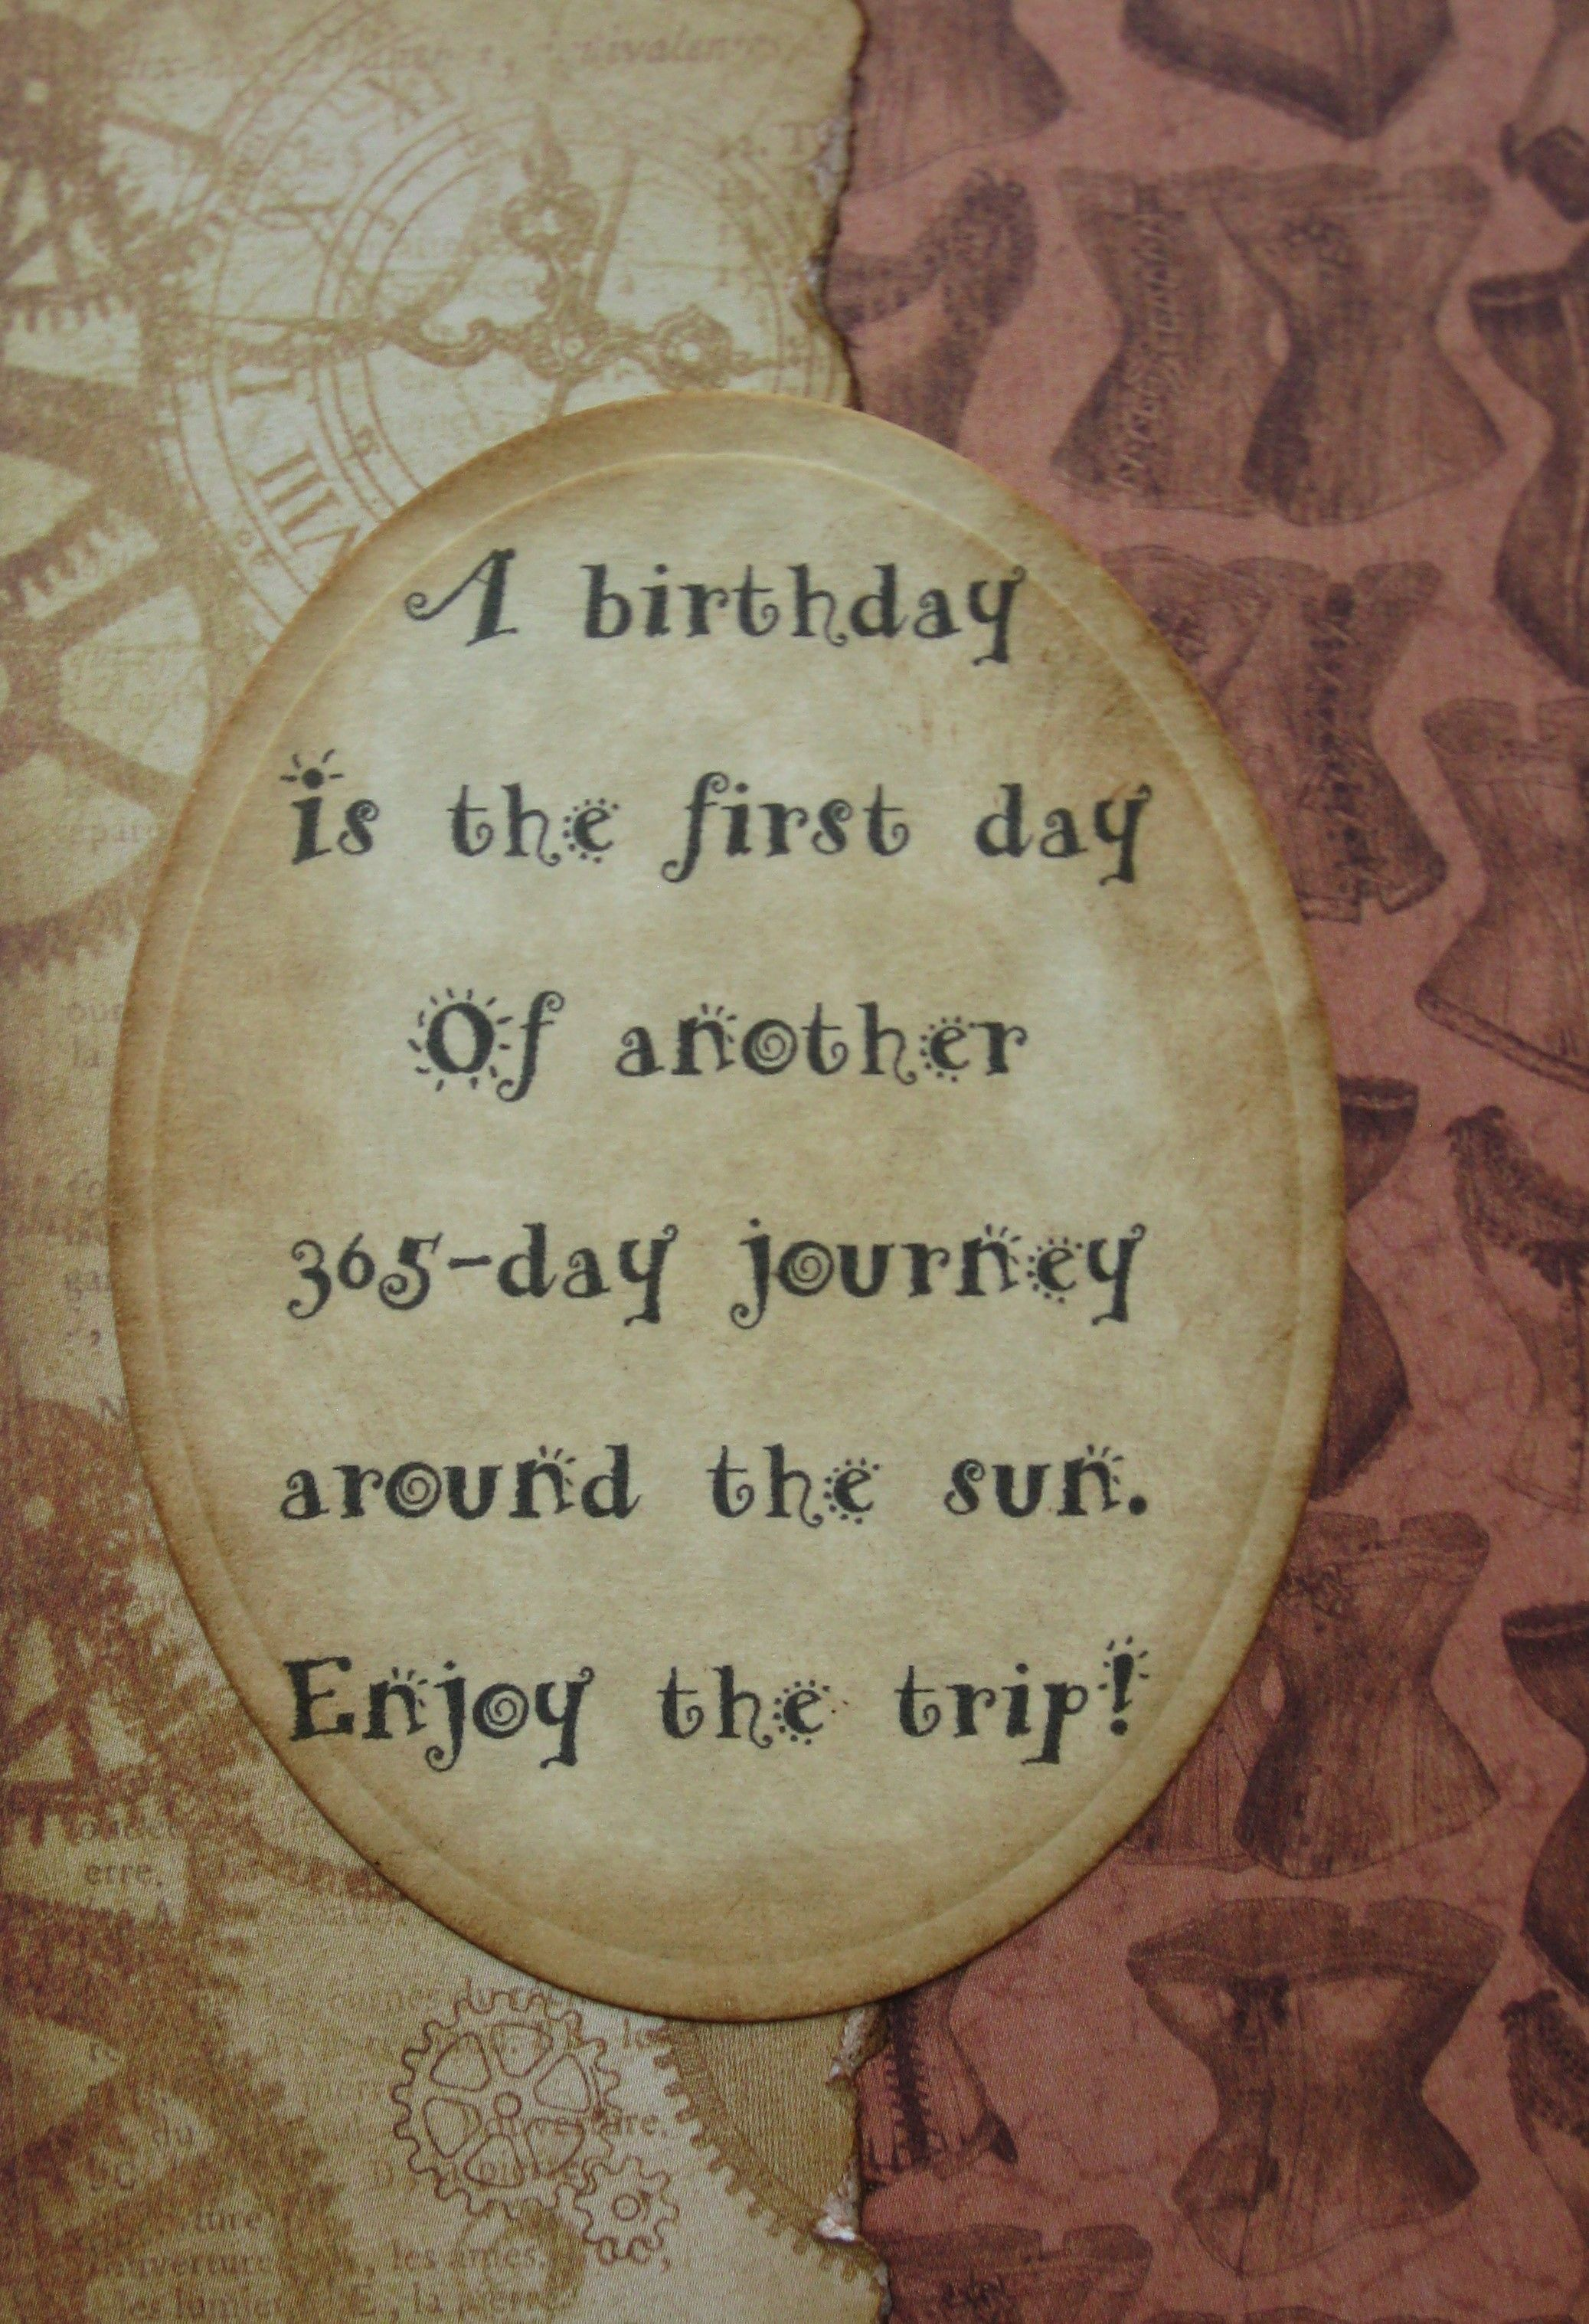 Steampunk Birthday Card Graphic 45 Steampunk Debutante Kathy By Design Birthday Cards Cards Inspirational Cards